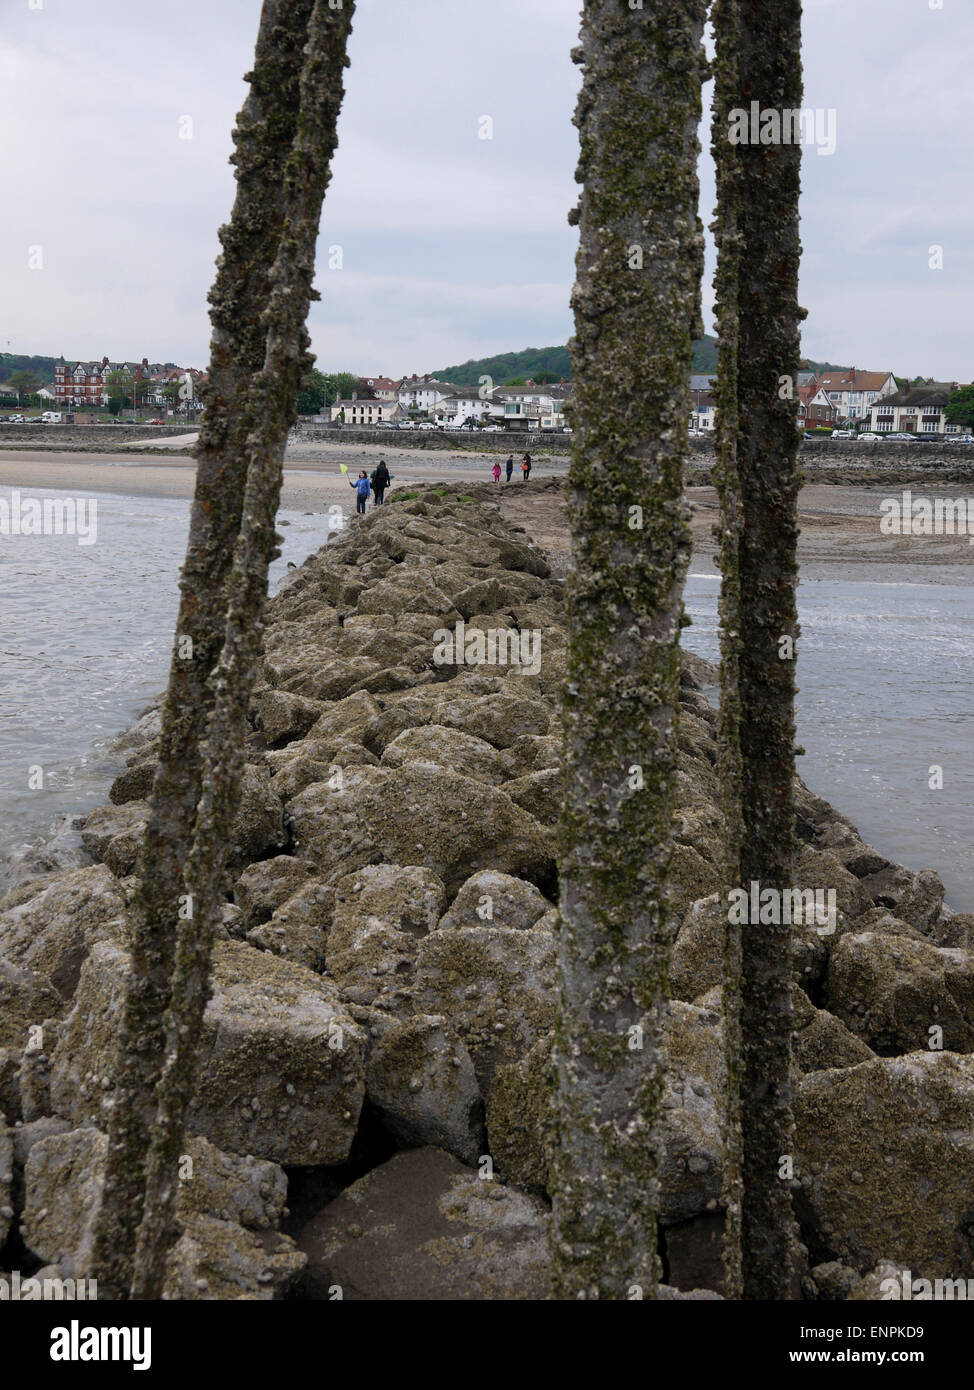 Rhos on Sea from the end of the harbour breakwater with the barnacle-encrusted tide-marker in the foreground - Stock Image